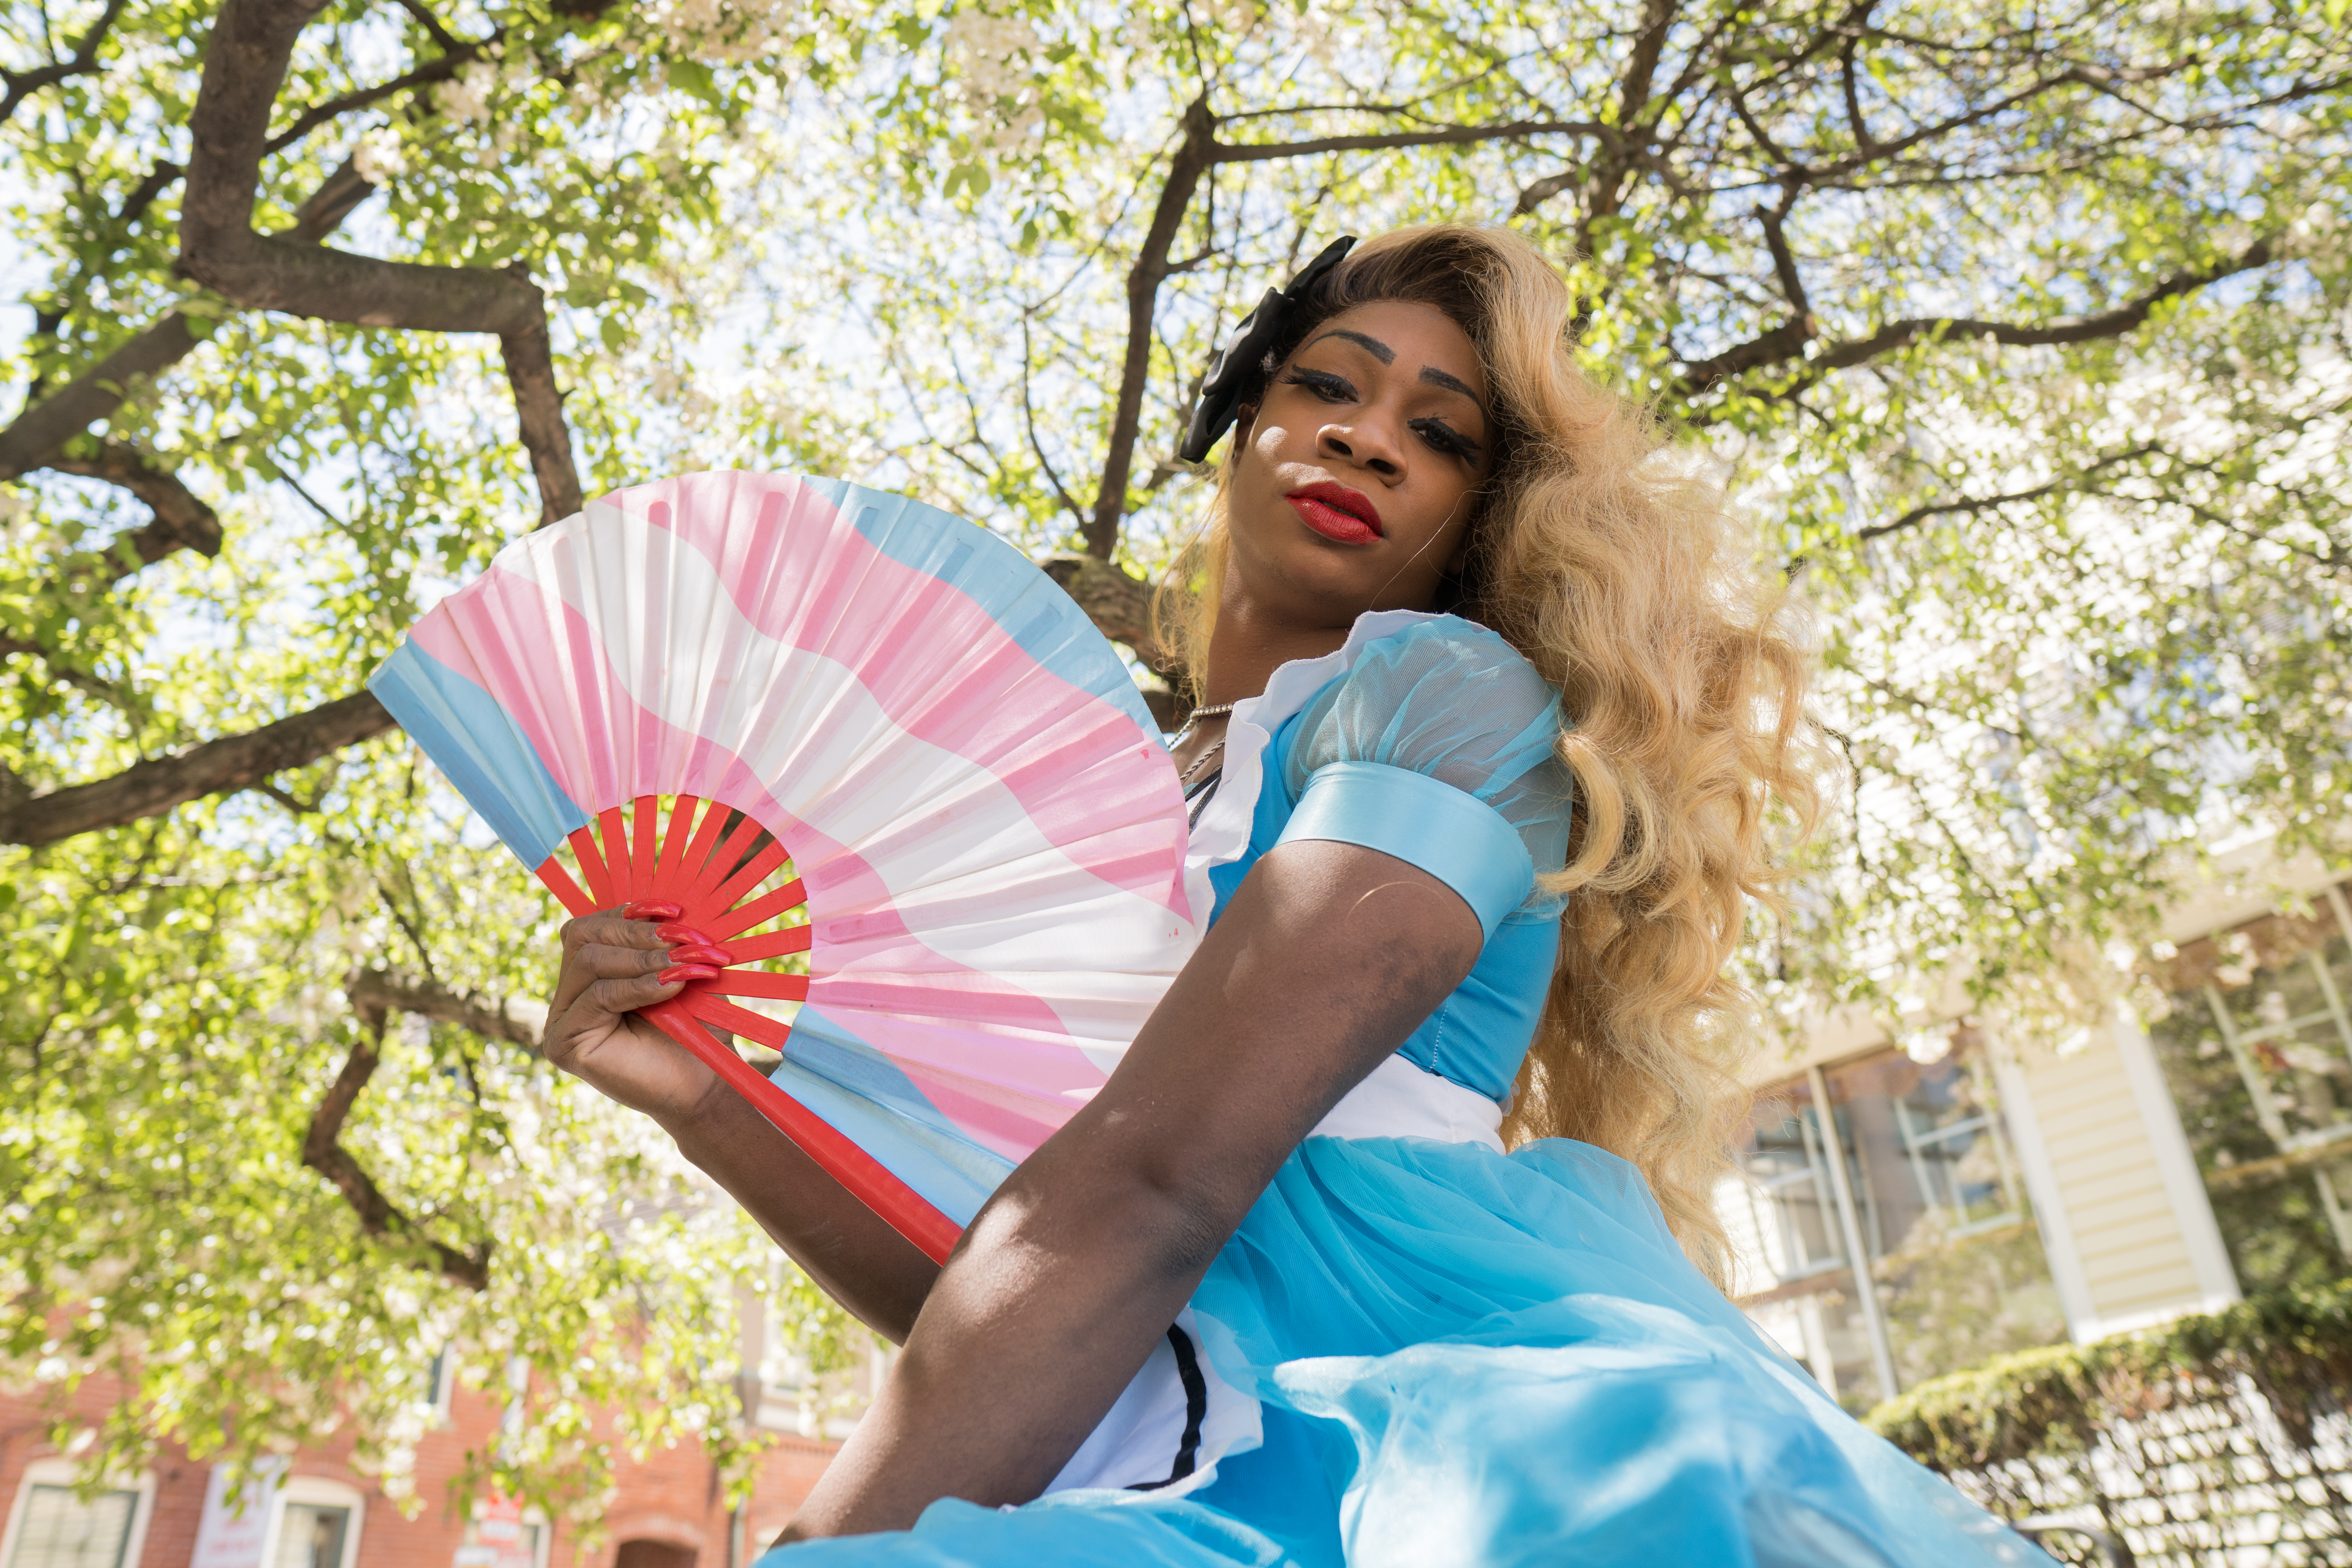 Lilly Rose Valore as Alice with a transgender pride-themed hand fan.